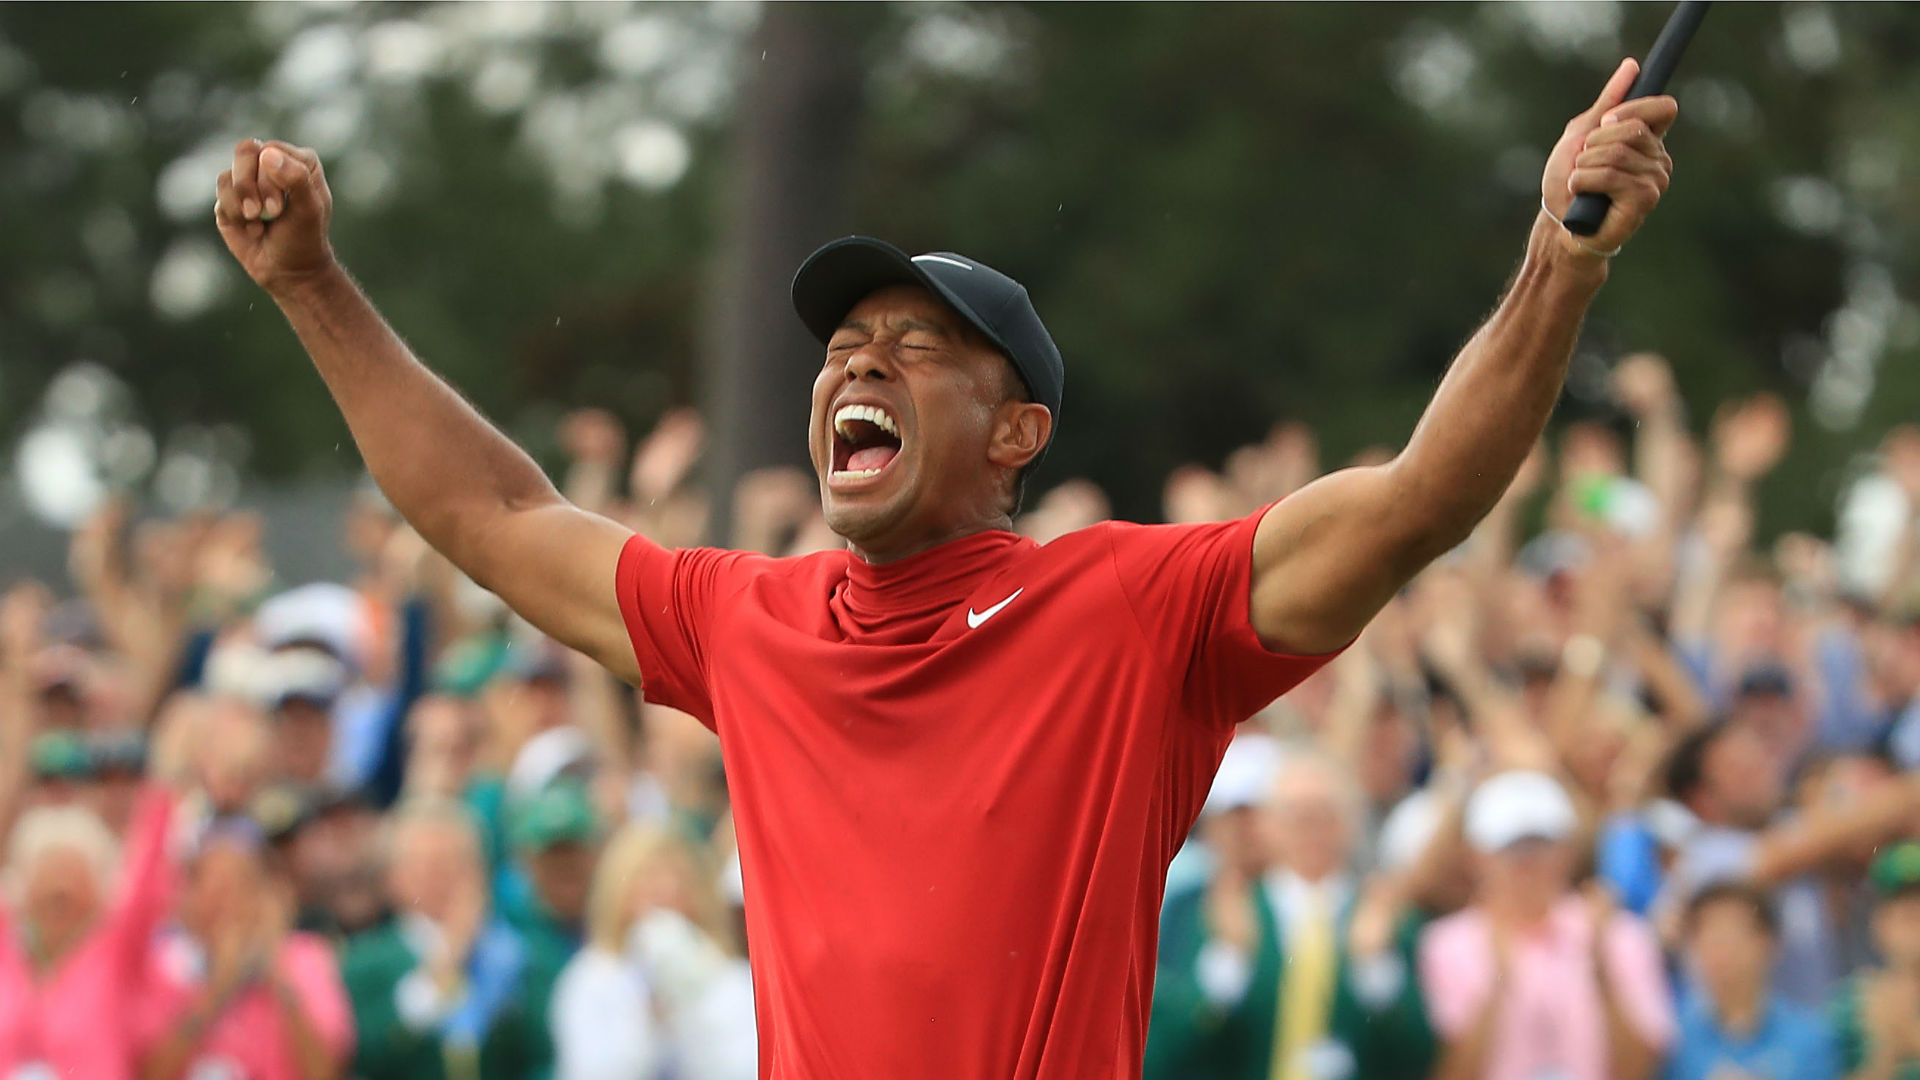 Tiger Woods' Masters win sparked 'profound' interest for people to play golf, report says